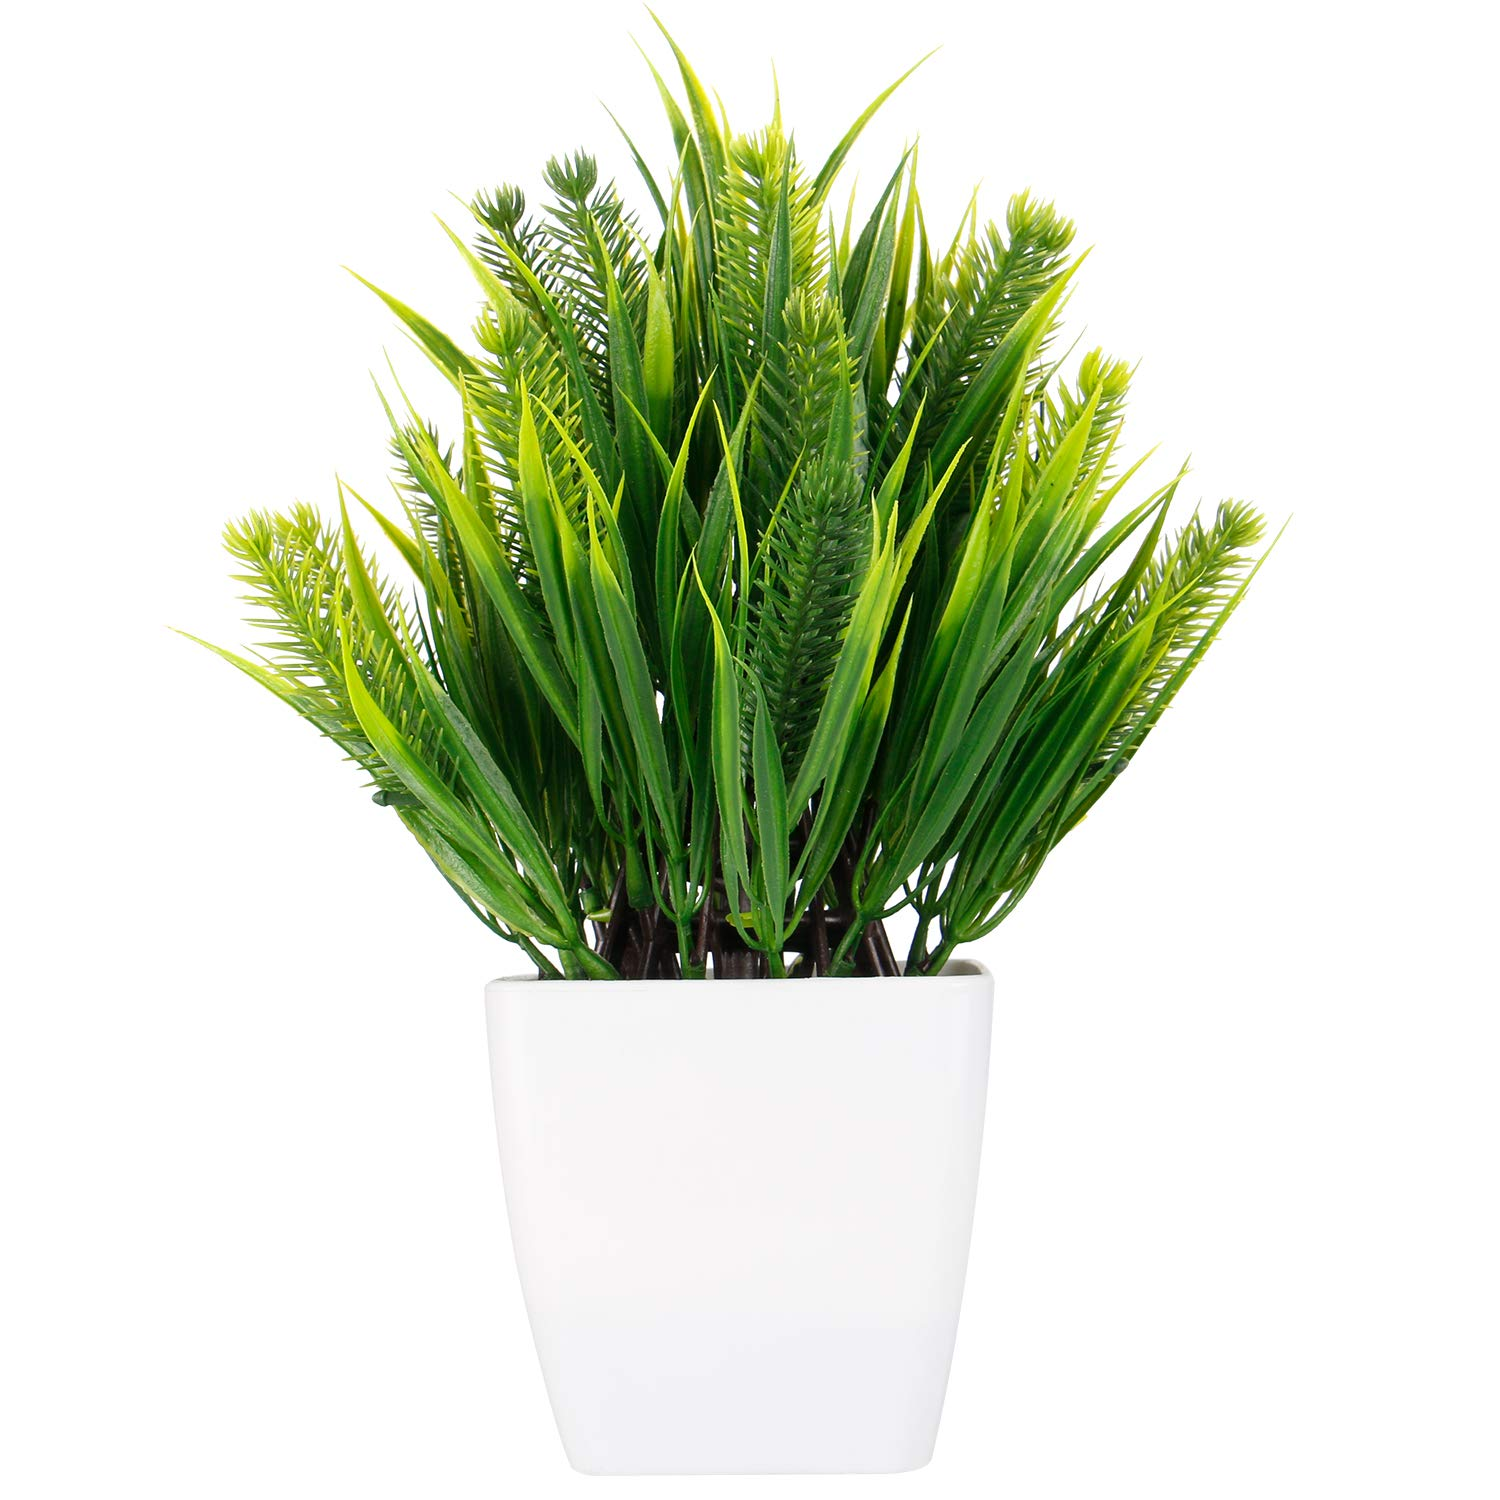 WOODWORD Artificial Plants for Room Decor   Potted Fake Plants for ...